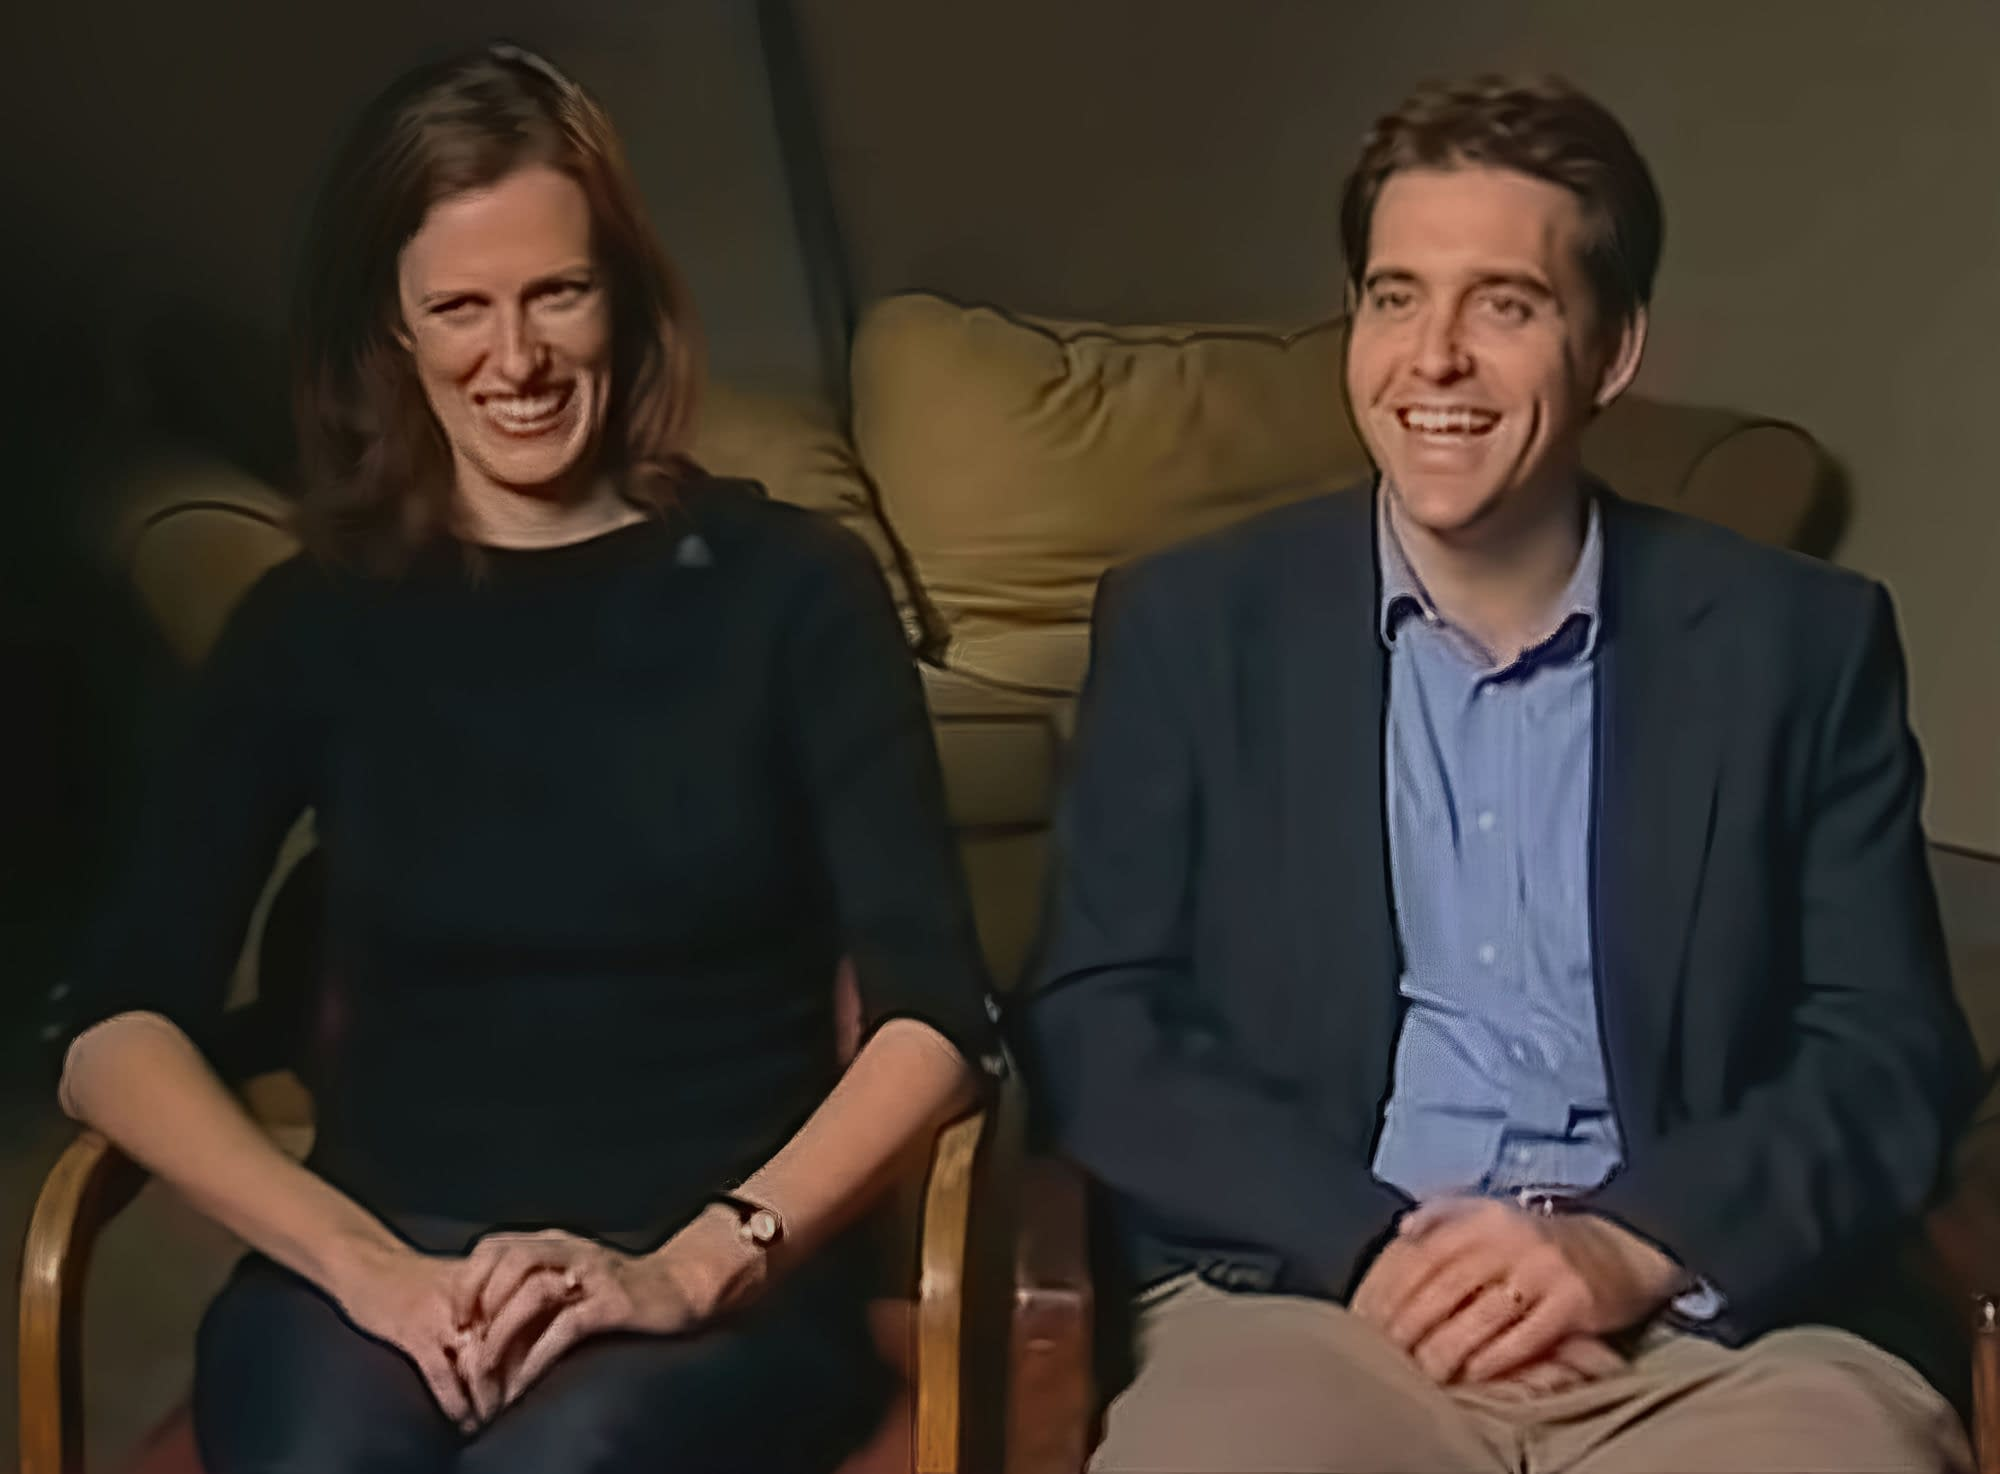 Jon Doris and Dolly Klock, inspirations for the characters JD and Elliot on Scrubs